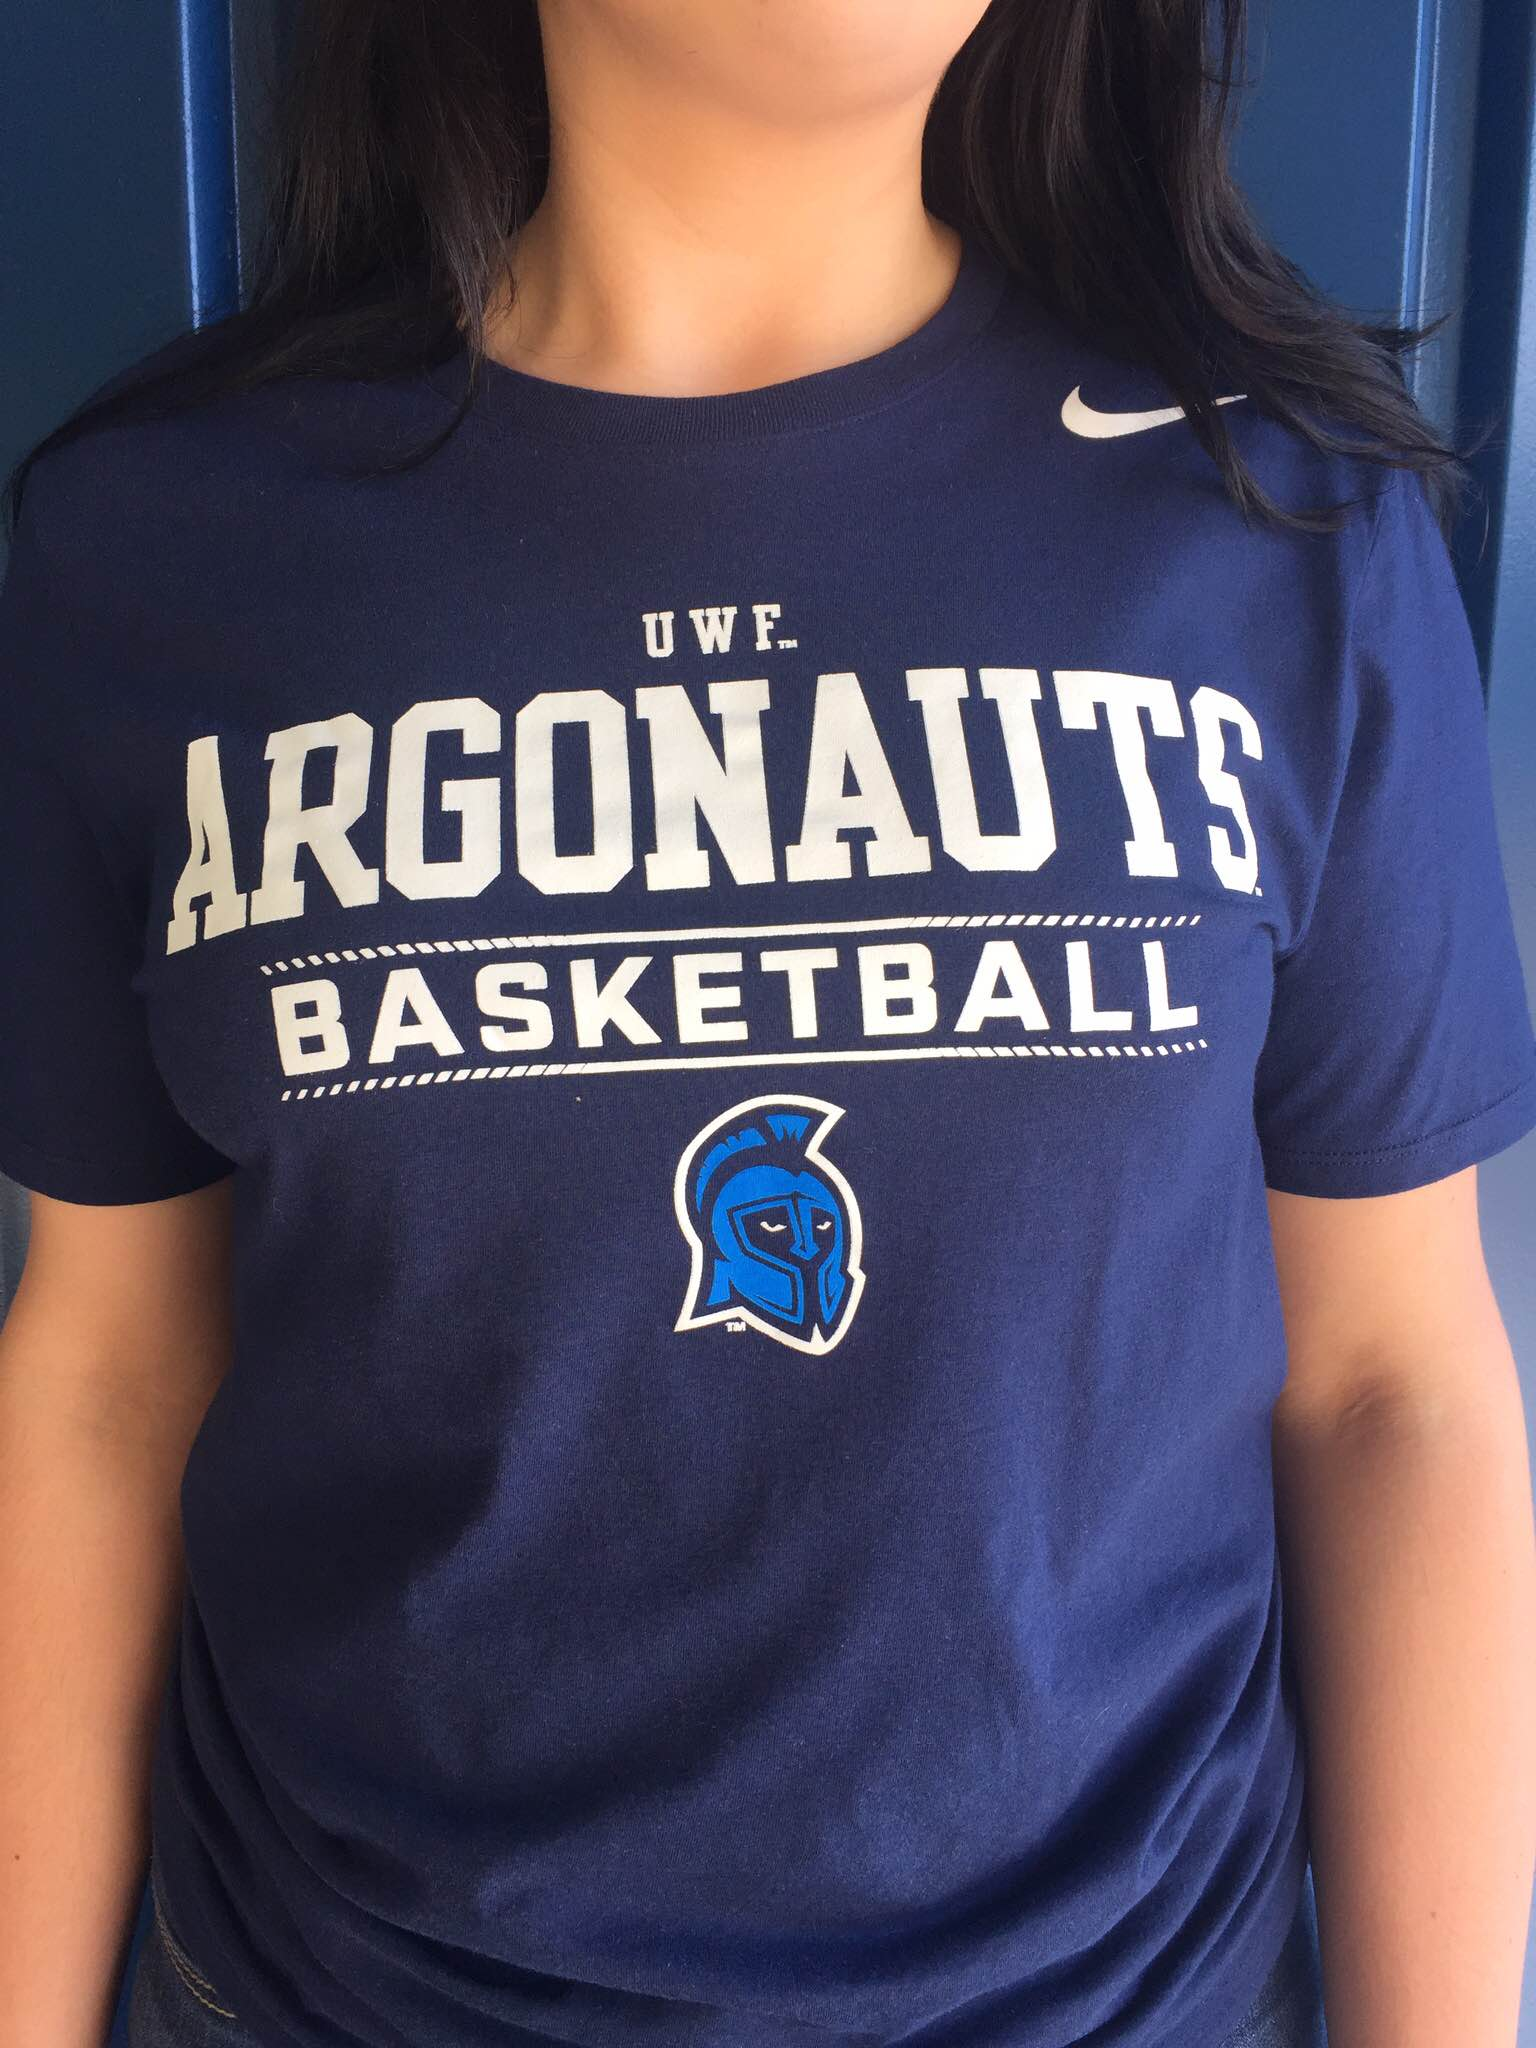 ARGOS BASKETBALL SHIRT